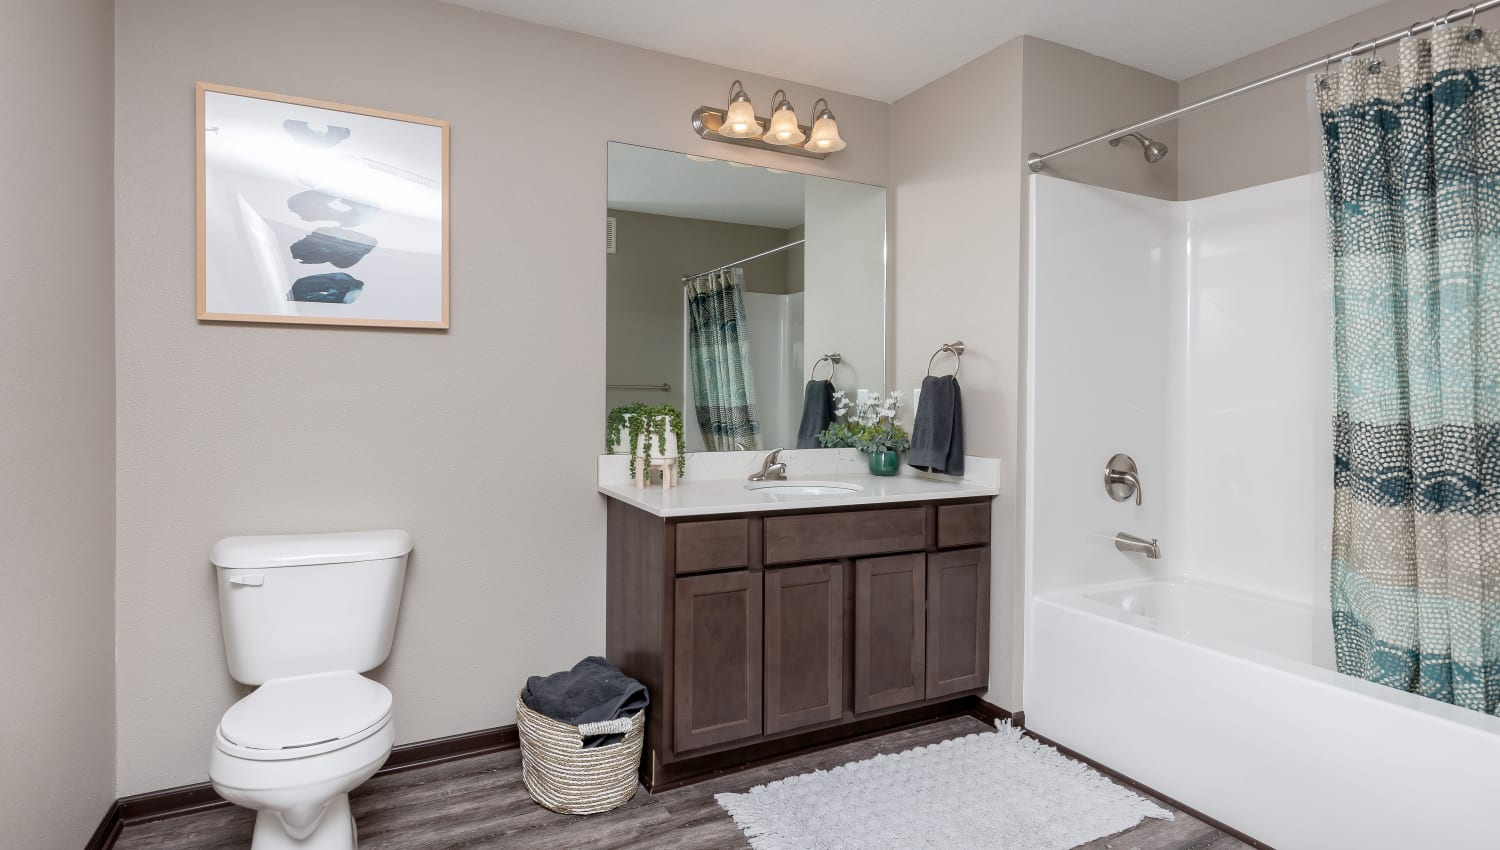 Clean bathroom at Autumn Ridge in Waukee, Iowa